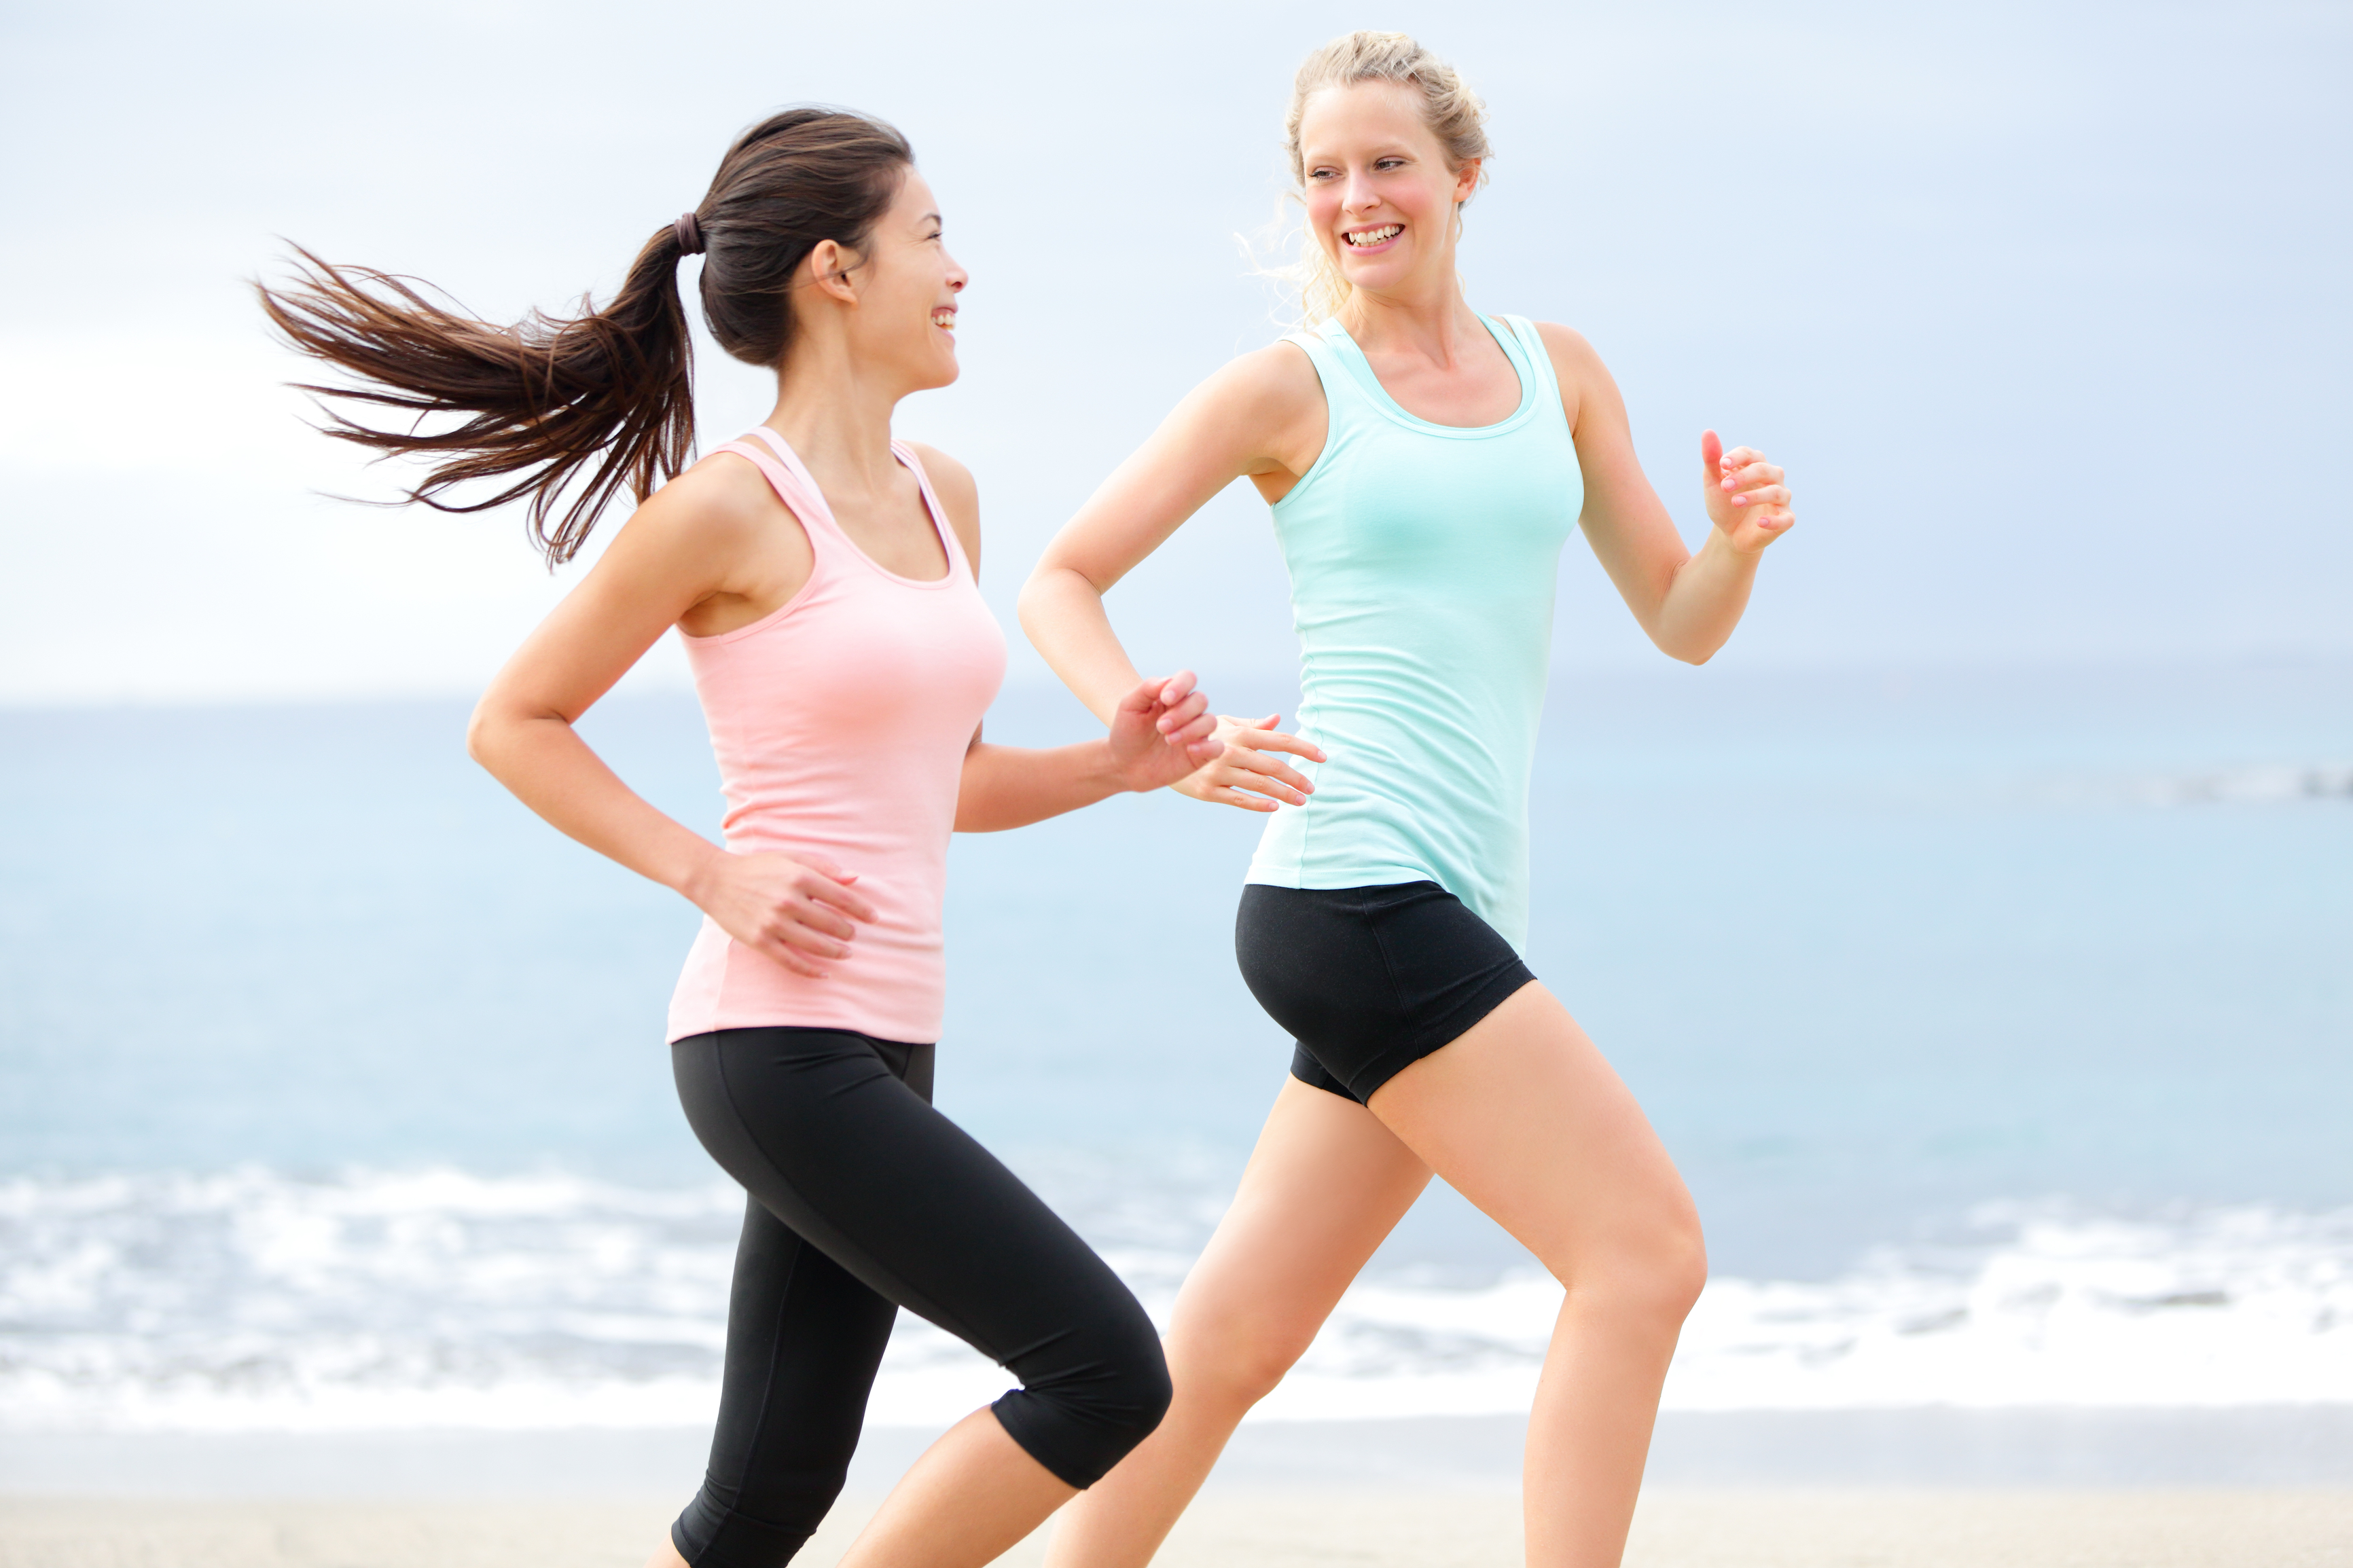 How To Exercise According To Your Mood Beauty News Australia